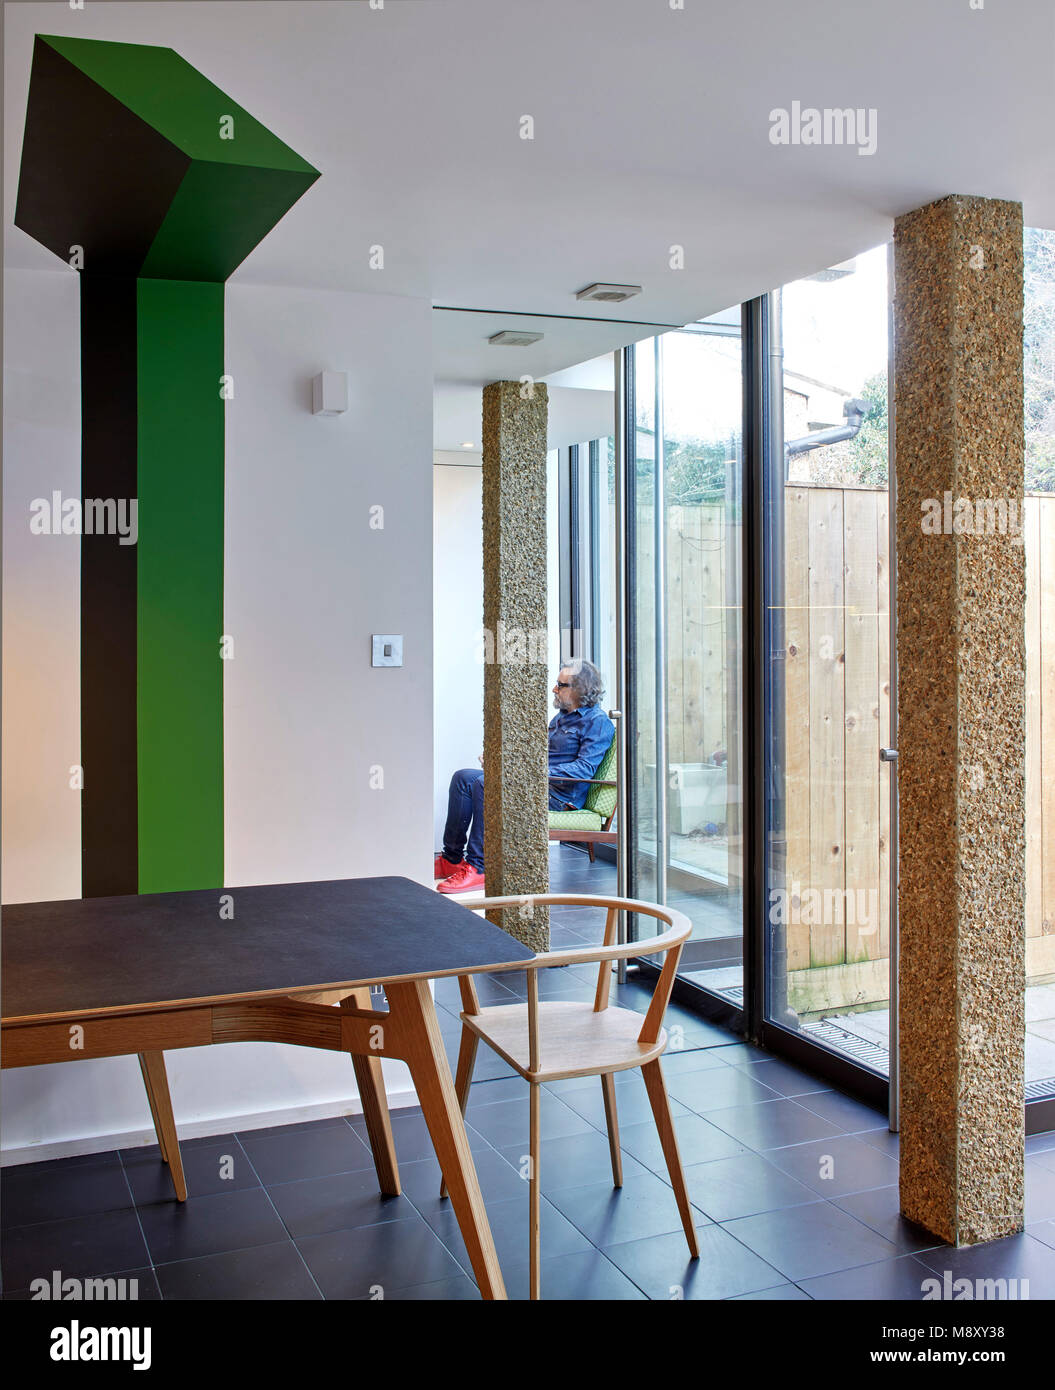 Interior view with architect in the mirror. Sean Griffiths, London, United Kingdom. Architect: Sean Griffiths , - Stock Image